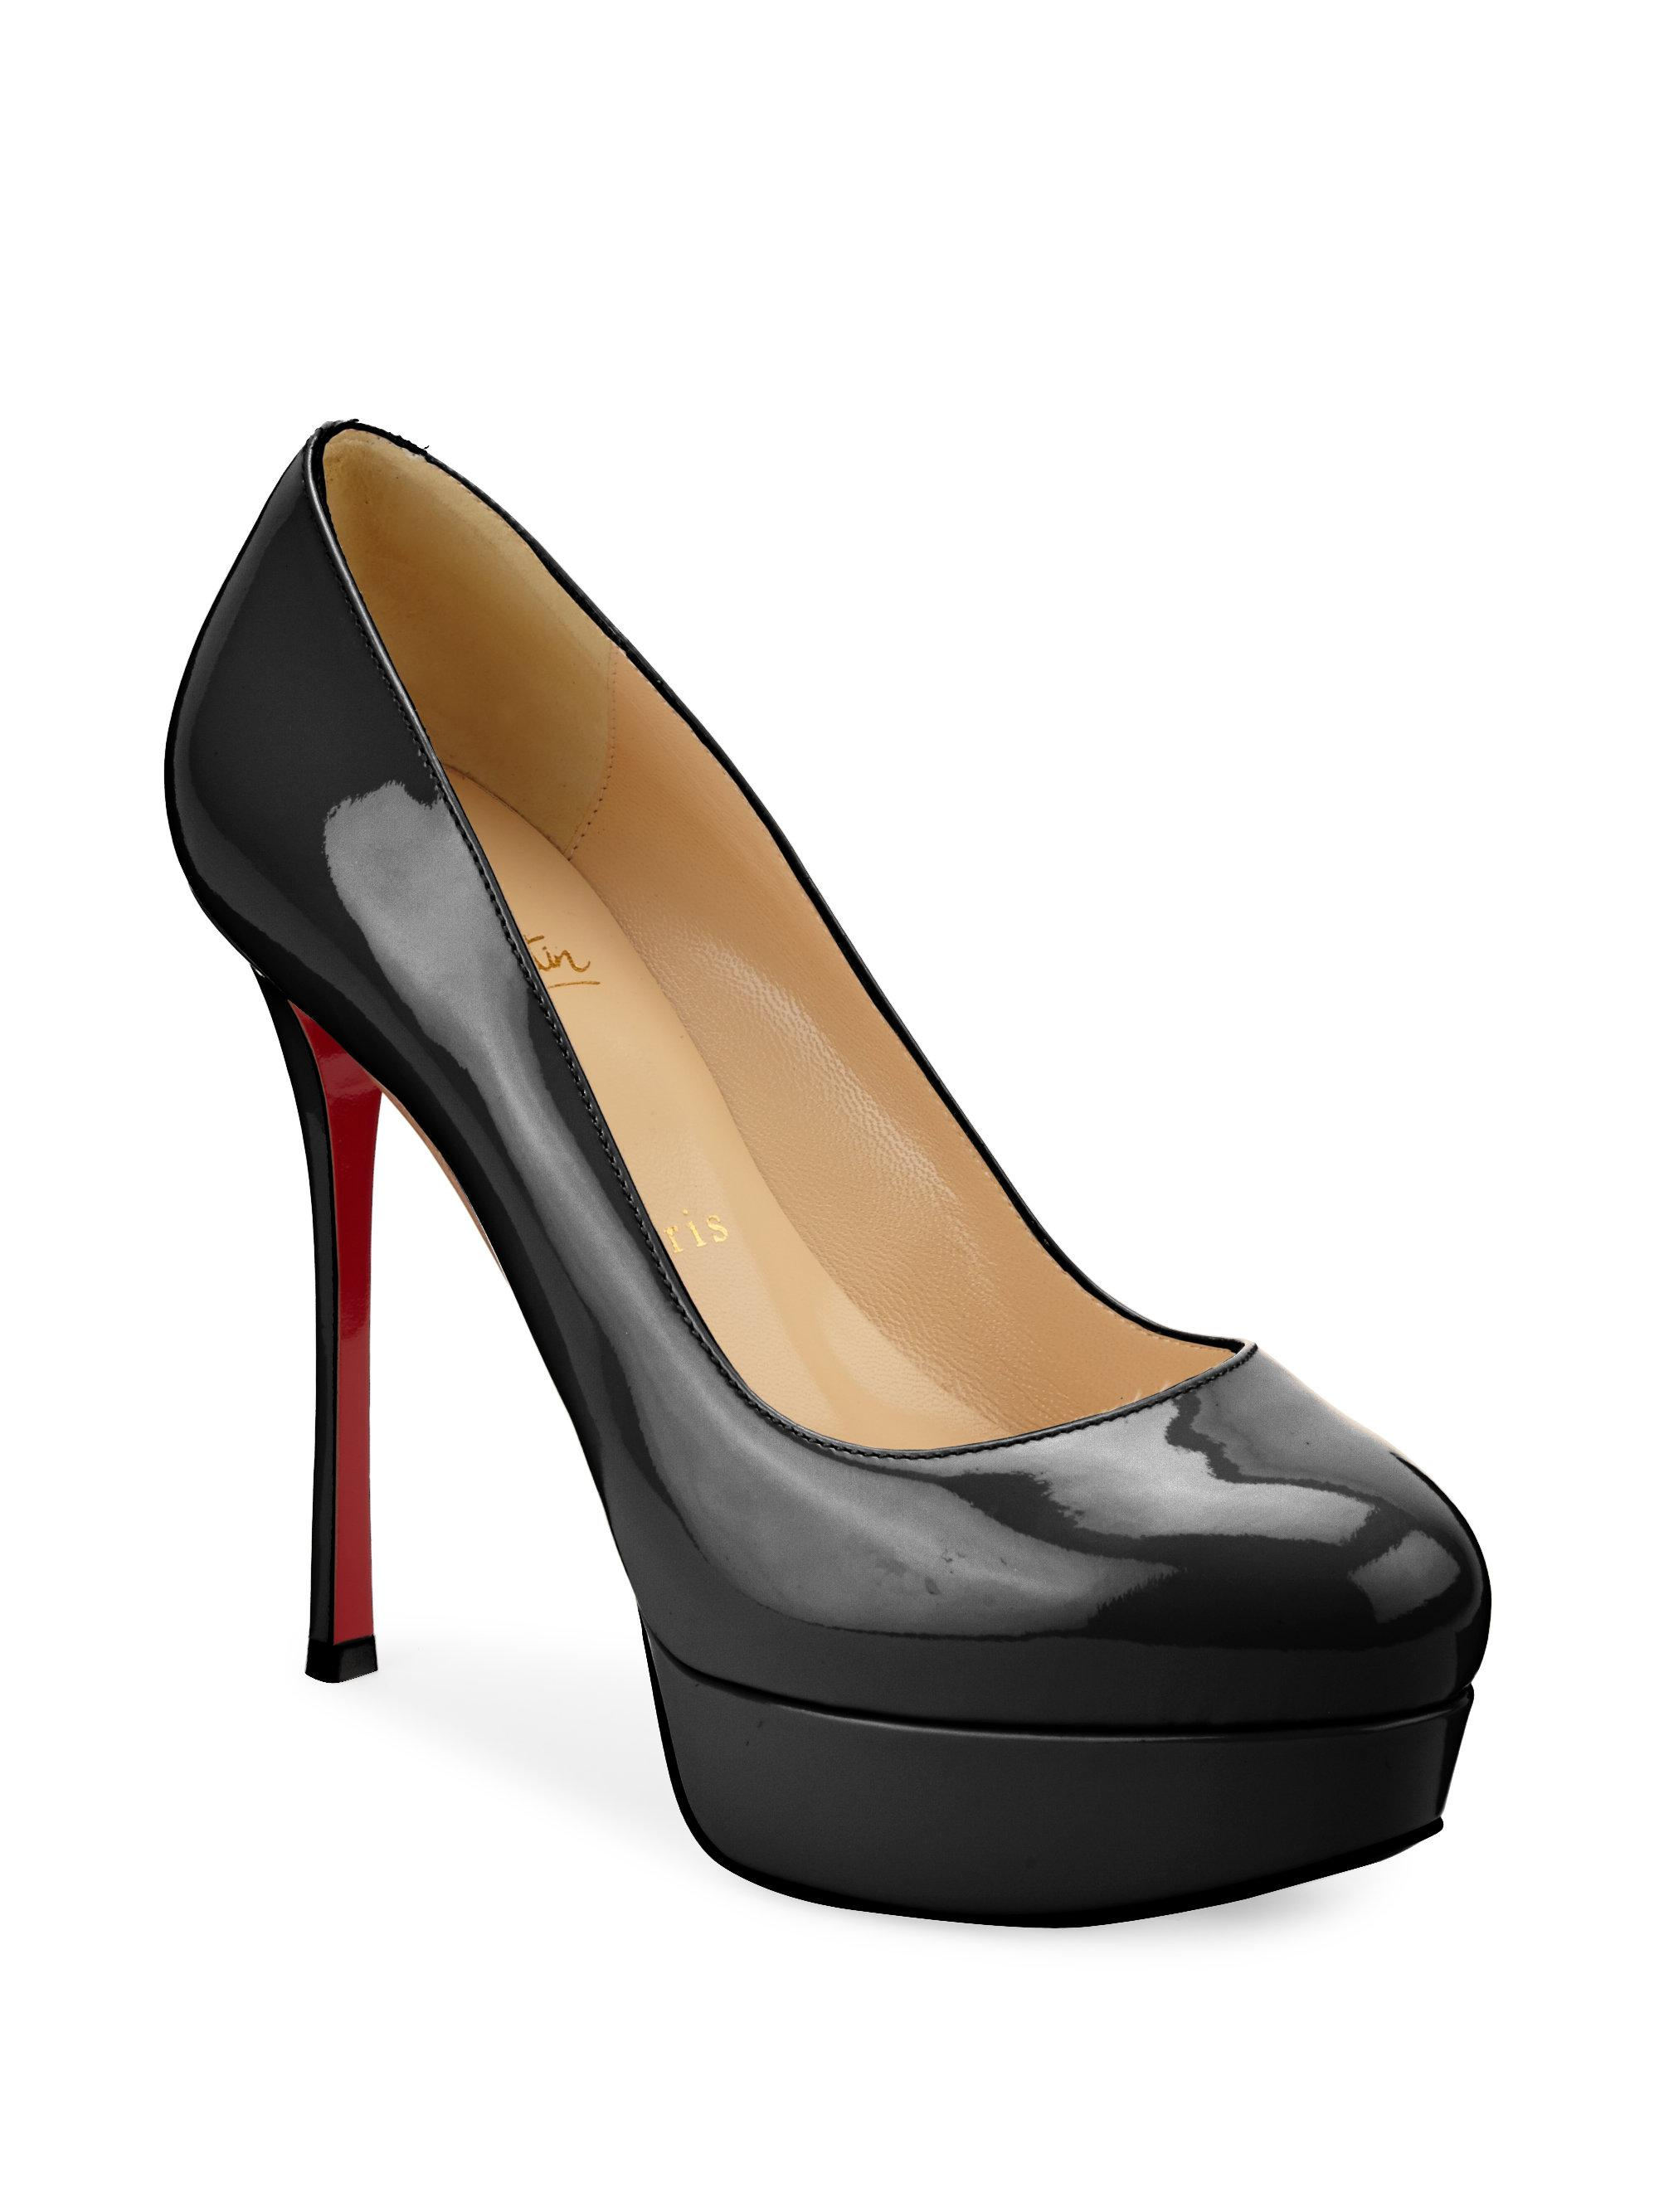 8d24f969163 Lyst - Christian Louboutin Dirditta 130 Patent Leather Pumps in Black